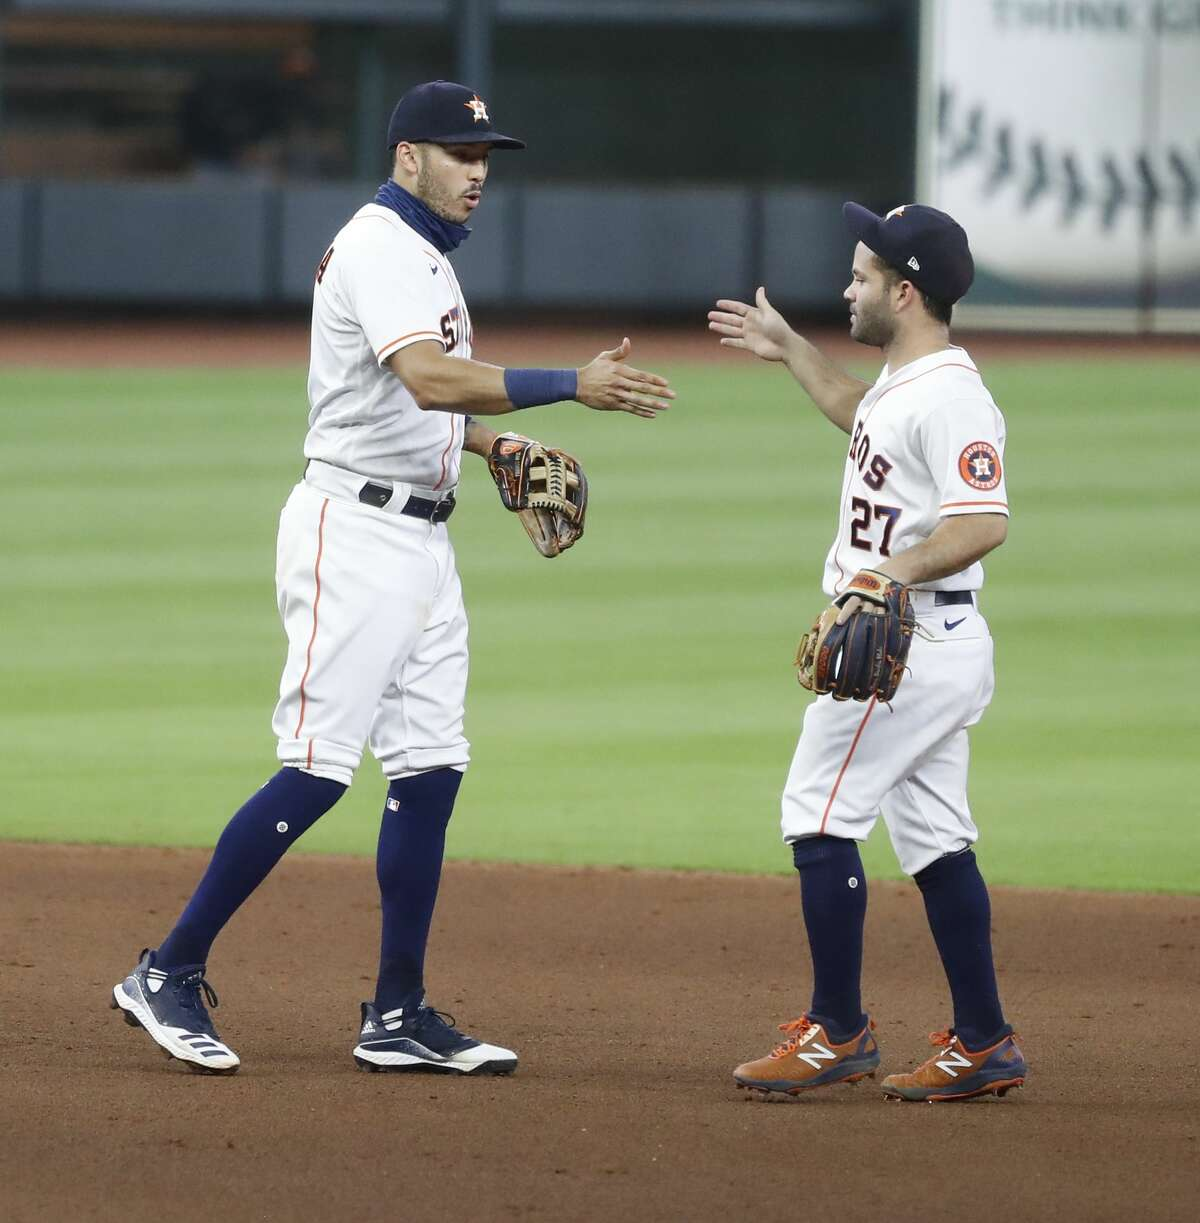 Houston Astros Carlos Correa (1) and Jose Altuve (27) celebrate the Astros 3-2 win over the Arizona Diamondbacks after the ninth inning of an MLB baseball game at Minute Maid Park, Saturday, September 19, 2020, in Houston.